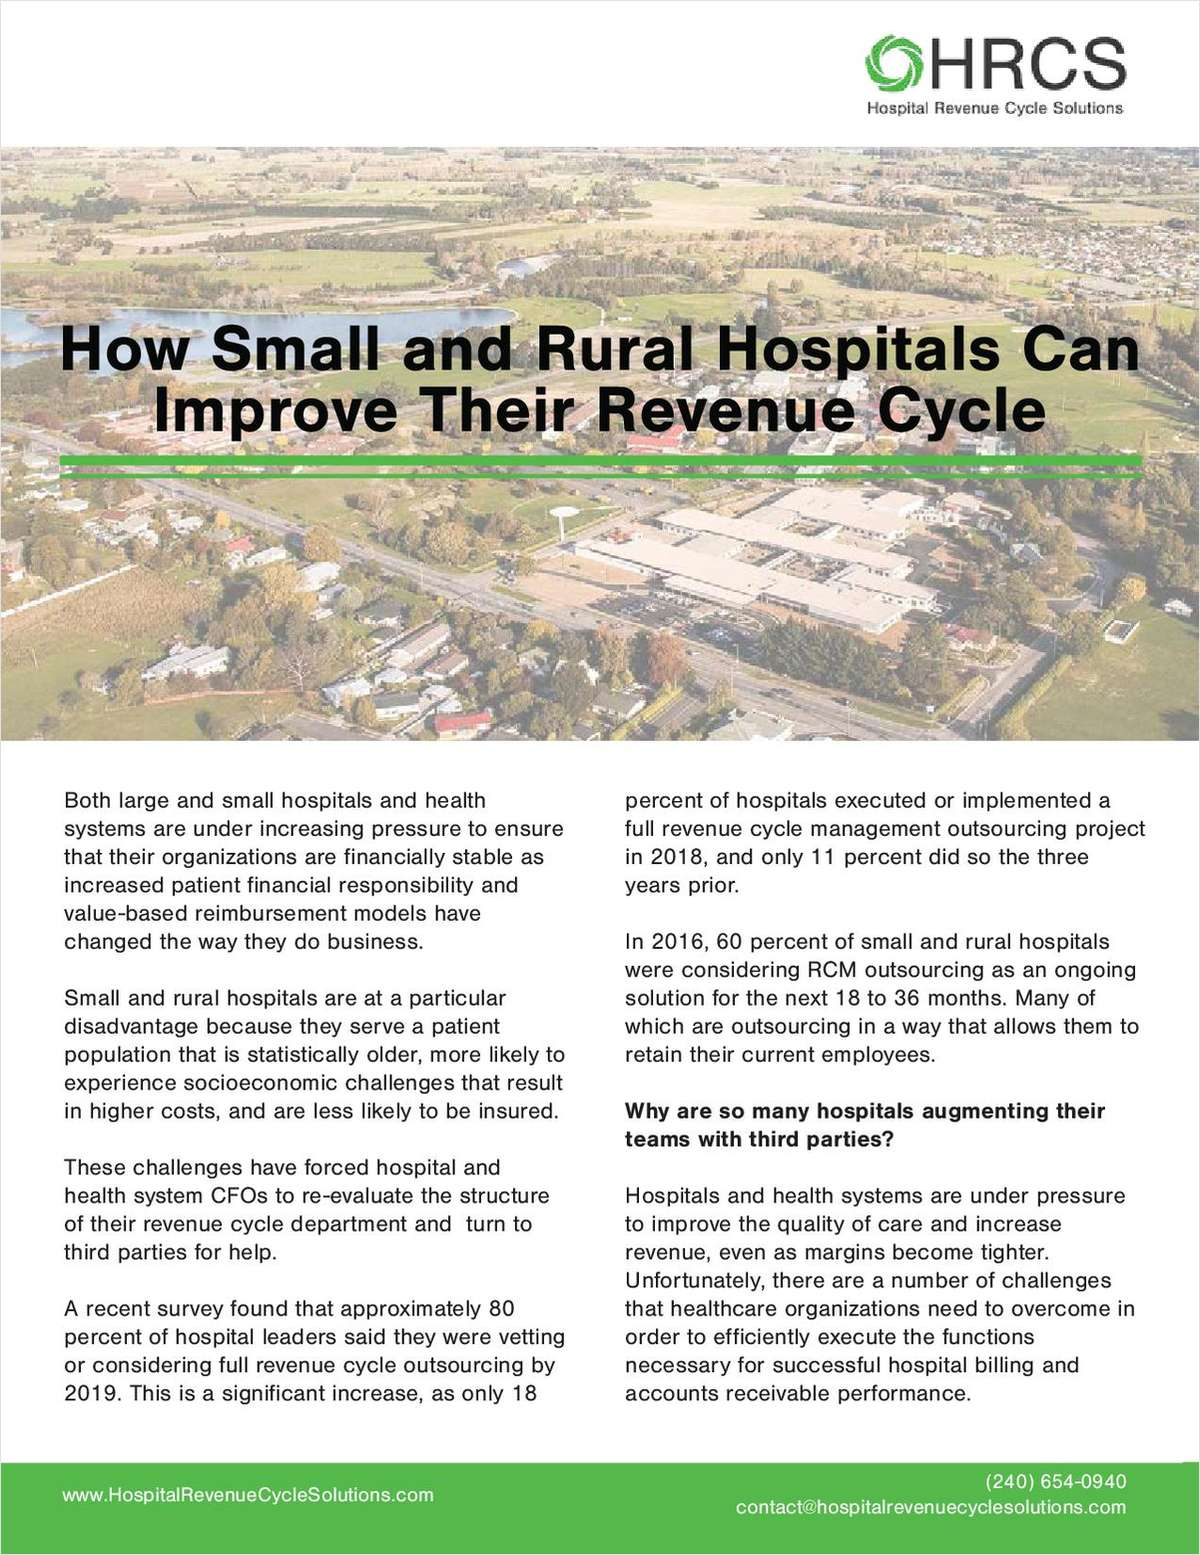 How Small and Rural Hospitals Can Improve Their Revenue Cycle